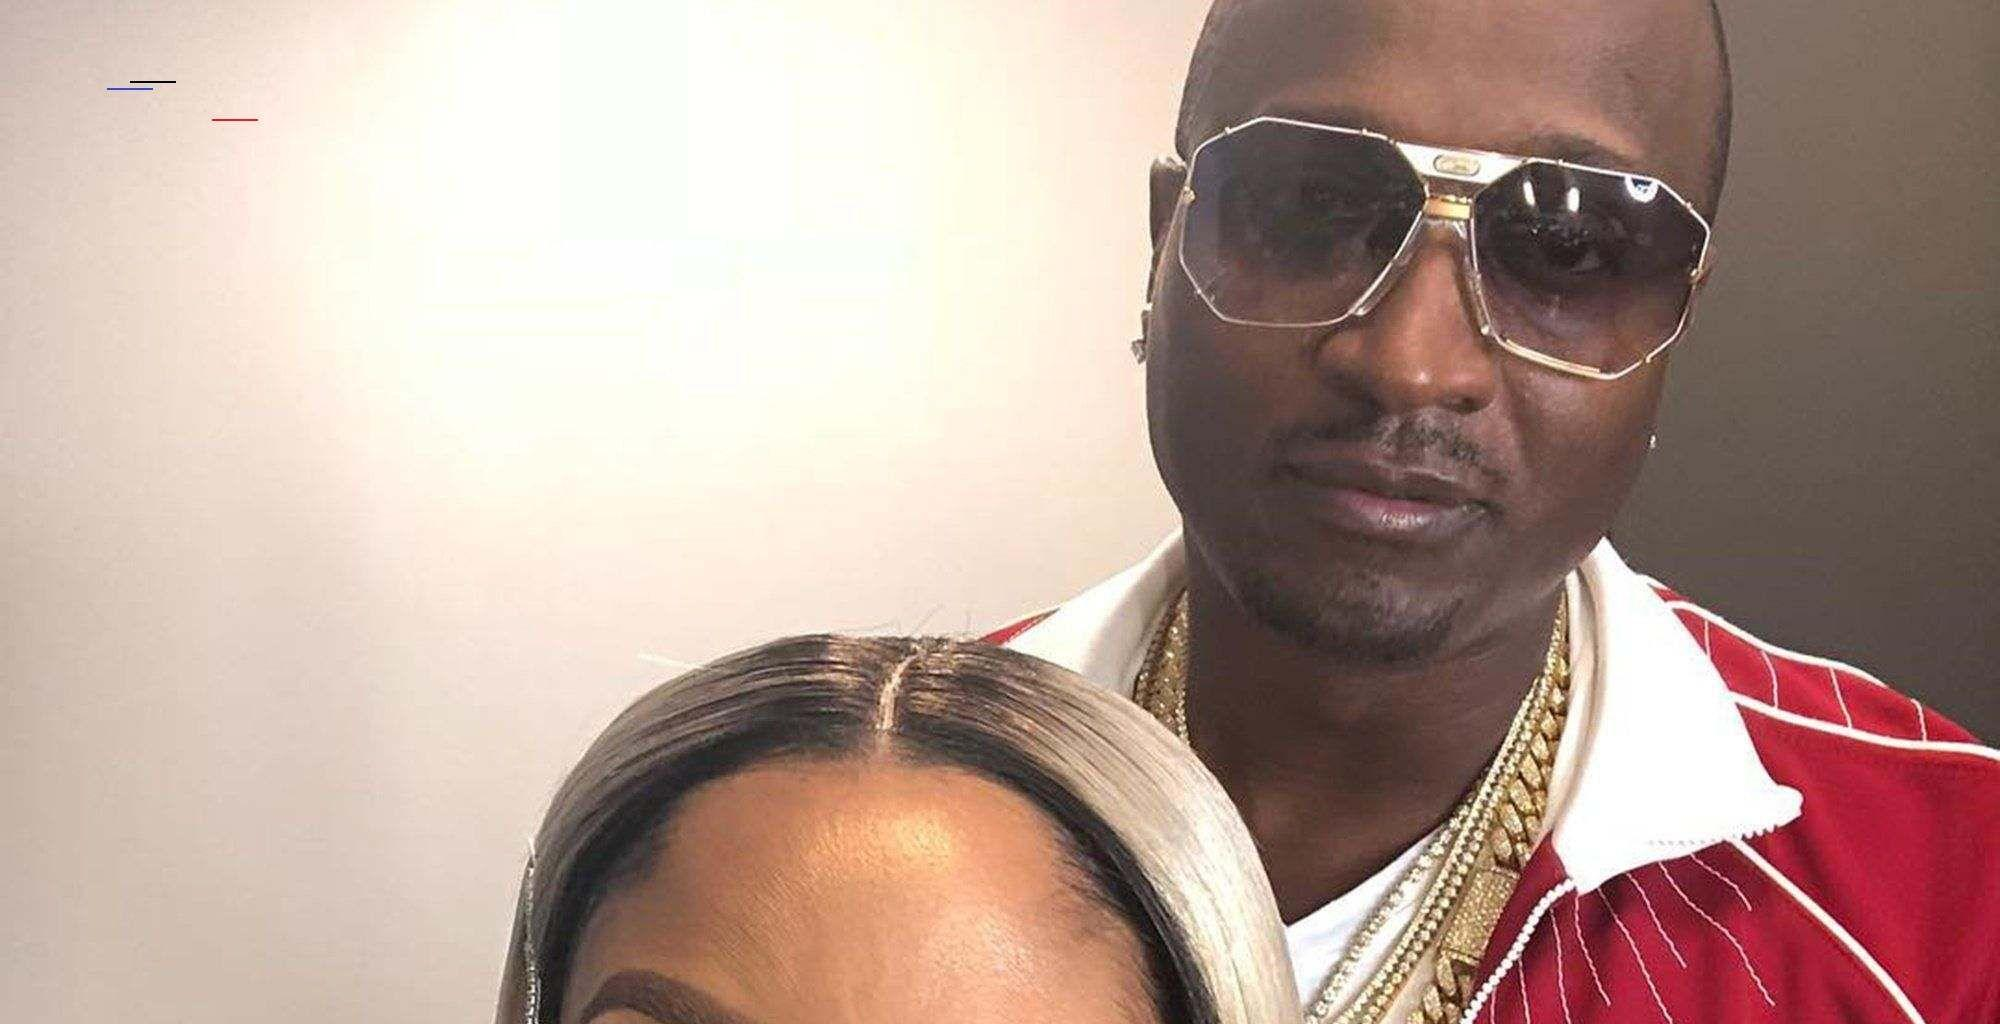 Kirk Frost's 'Couples Retreat' Video Has Fans Excited - Check It Out Here